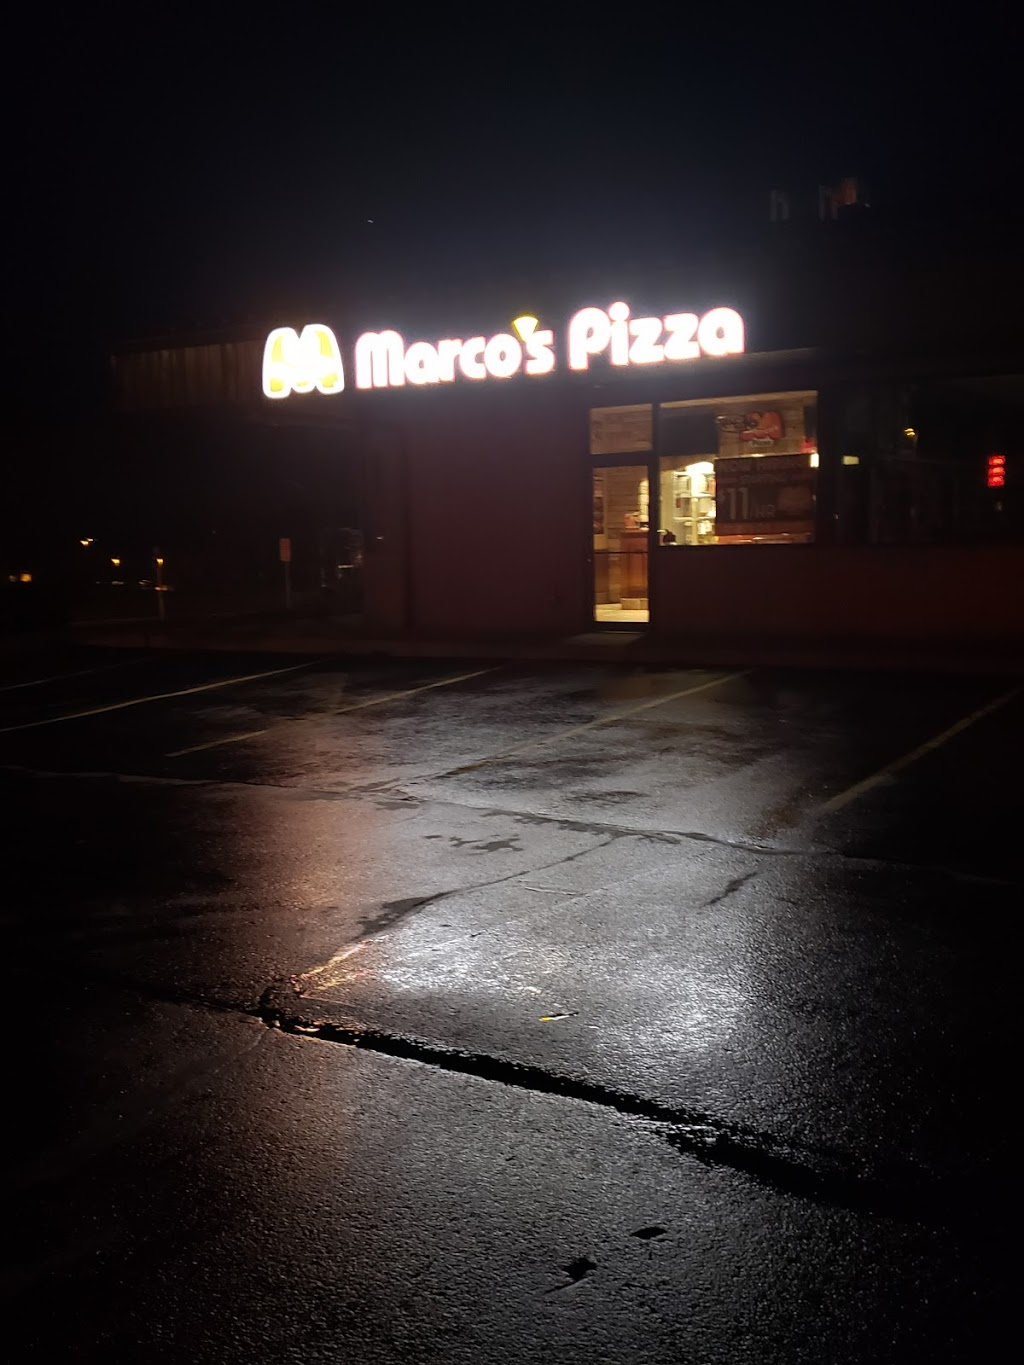 Marcos Pizza   meal delivery   3162 Maple Grove Dr, Madison, WI 53719, USA   6084978004 OR +1 608-497-8004